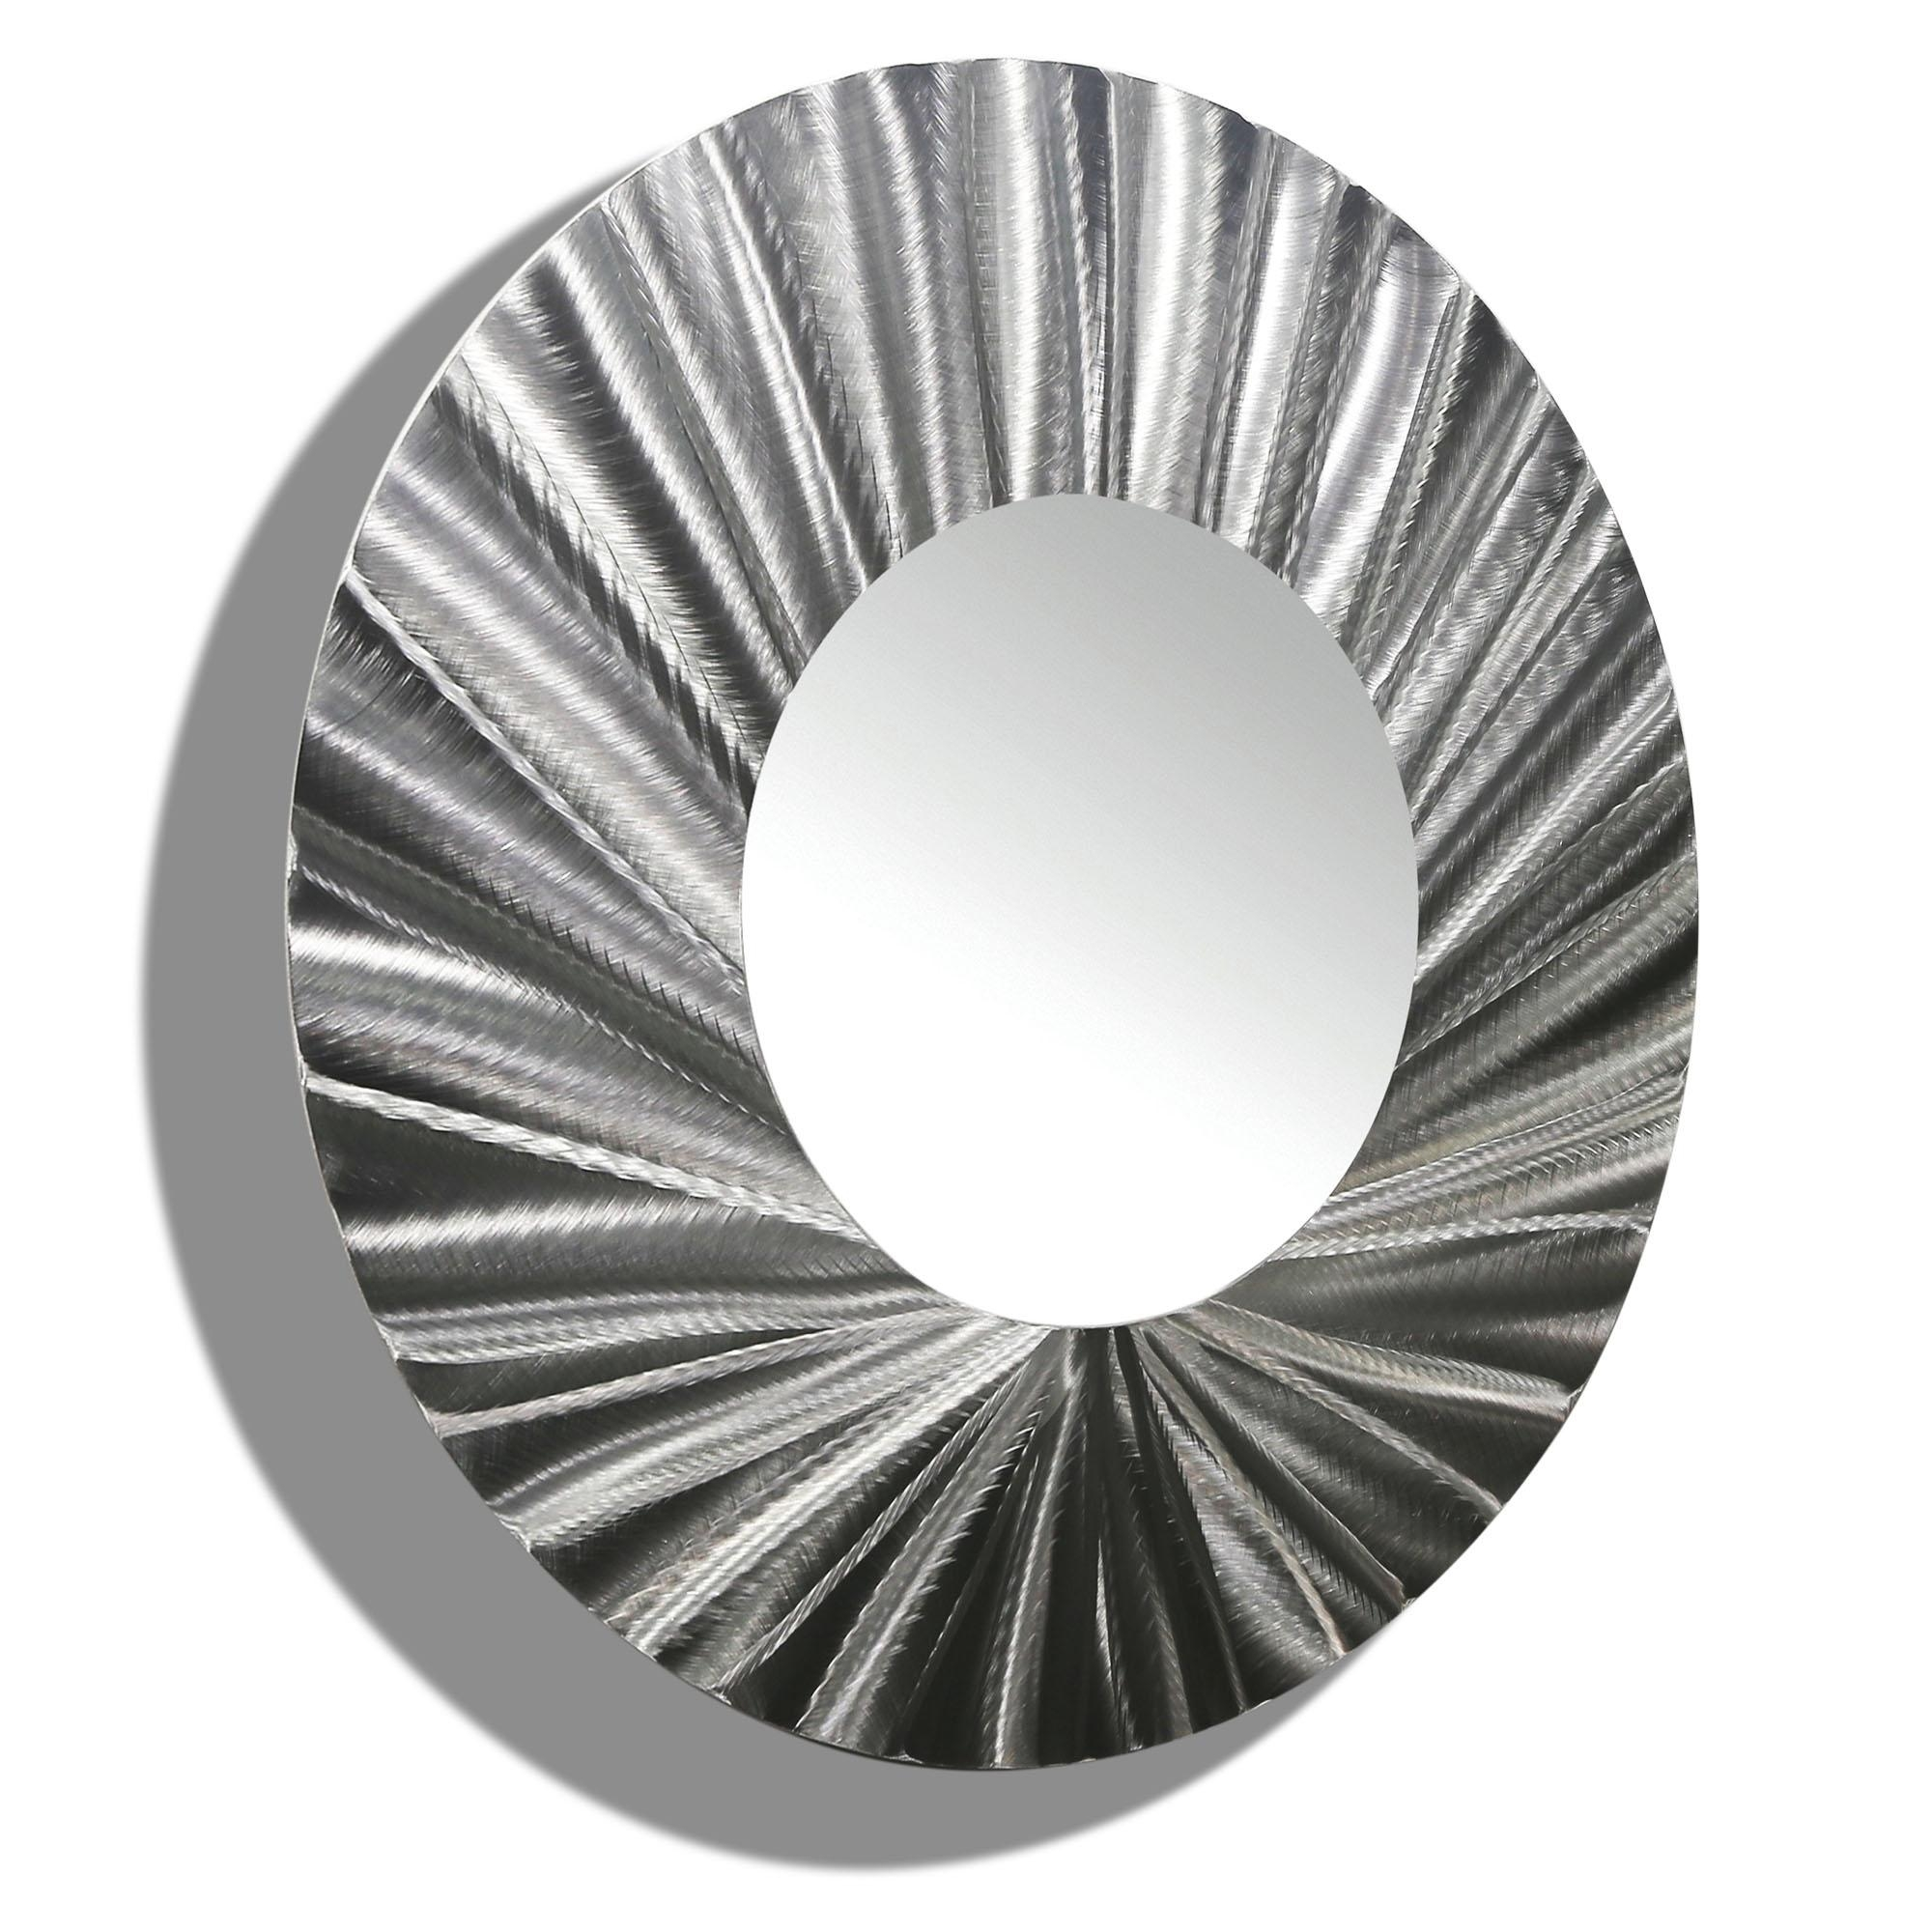 Mirror 118 – Round Silver Modern Metal Wall Art Mirror Accent Inside Modern Silver Mirror (Image 13 of 20)